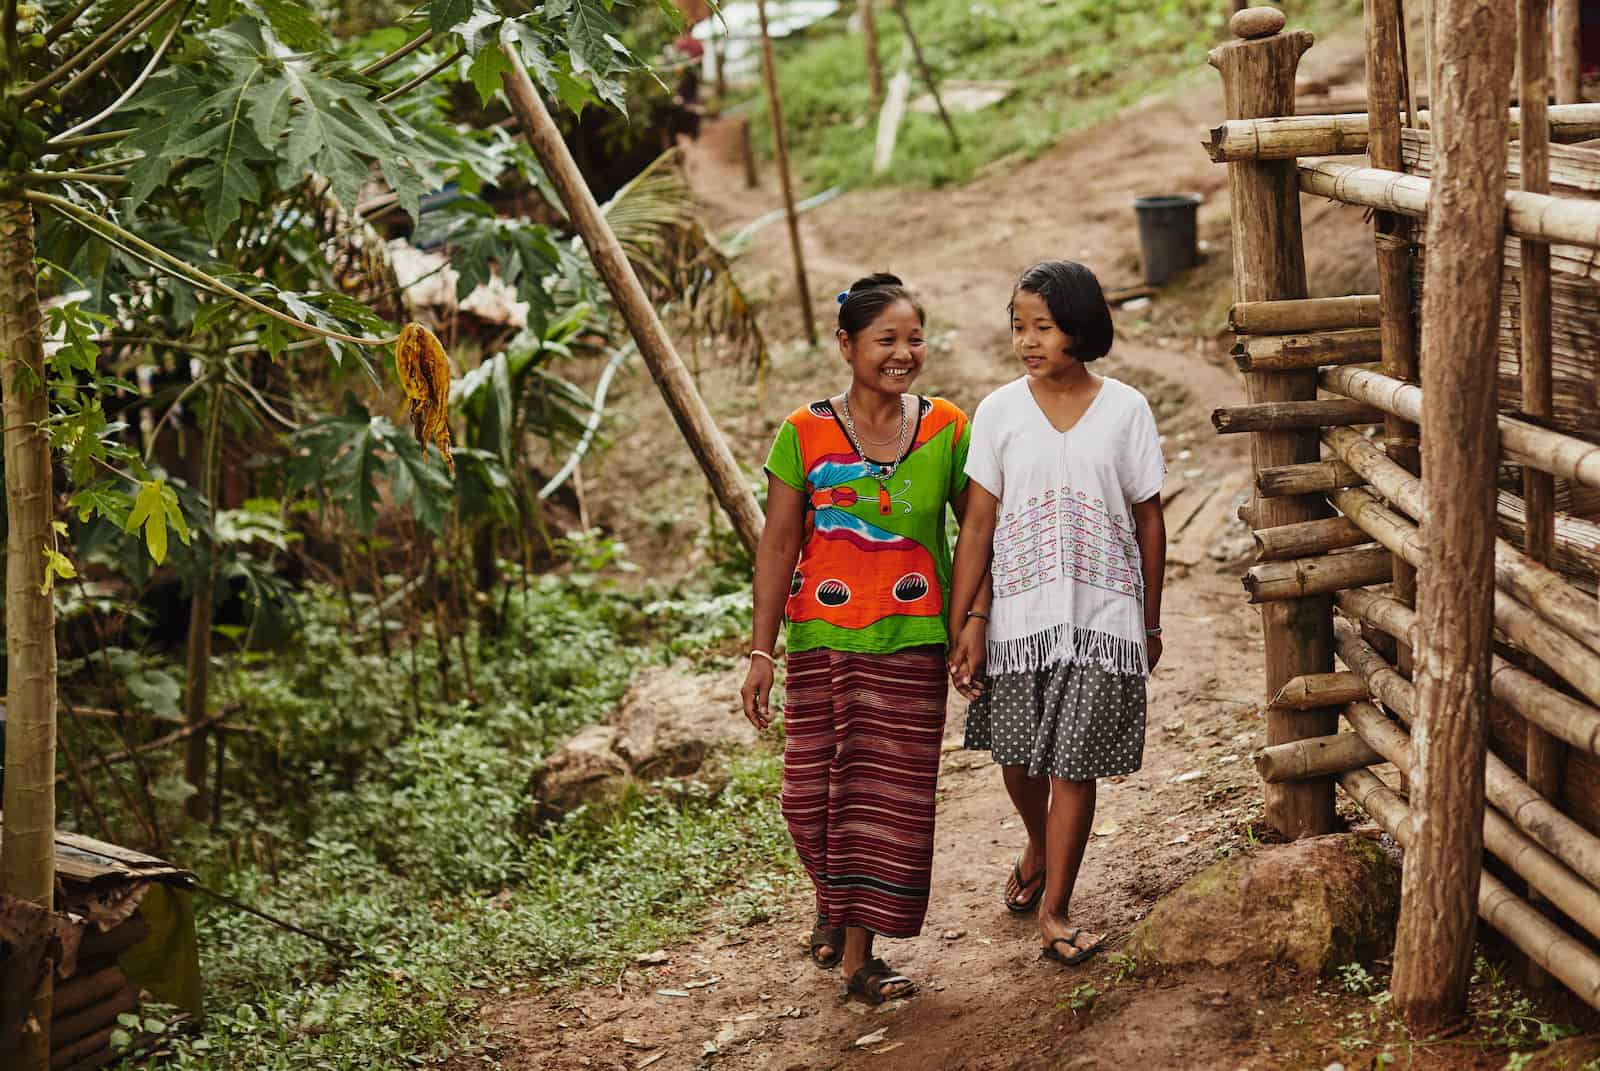 A woman wearing a patterned skirt and red and green shirt walks down a dirt path with a girl in a white shirt and grey skirt by her side. They are next to a bamboo home and forest.